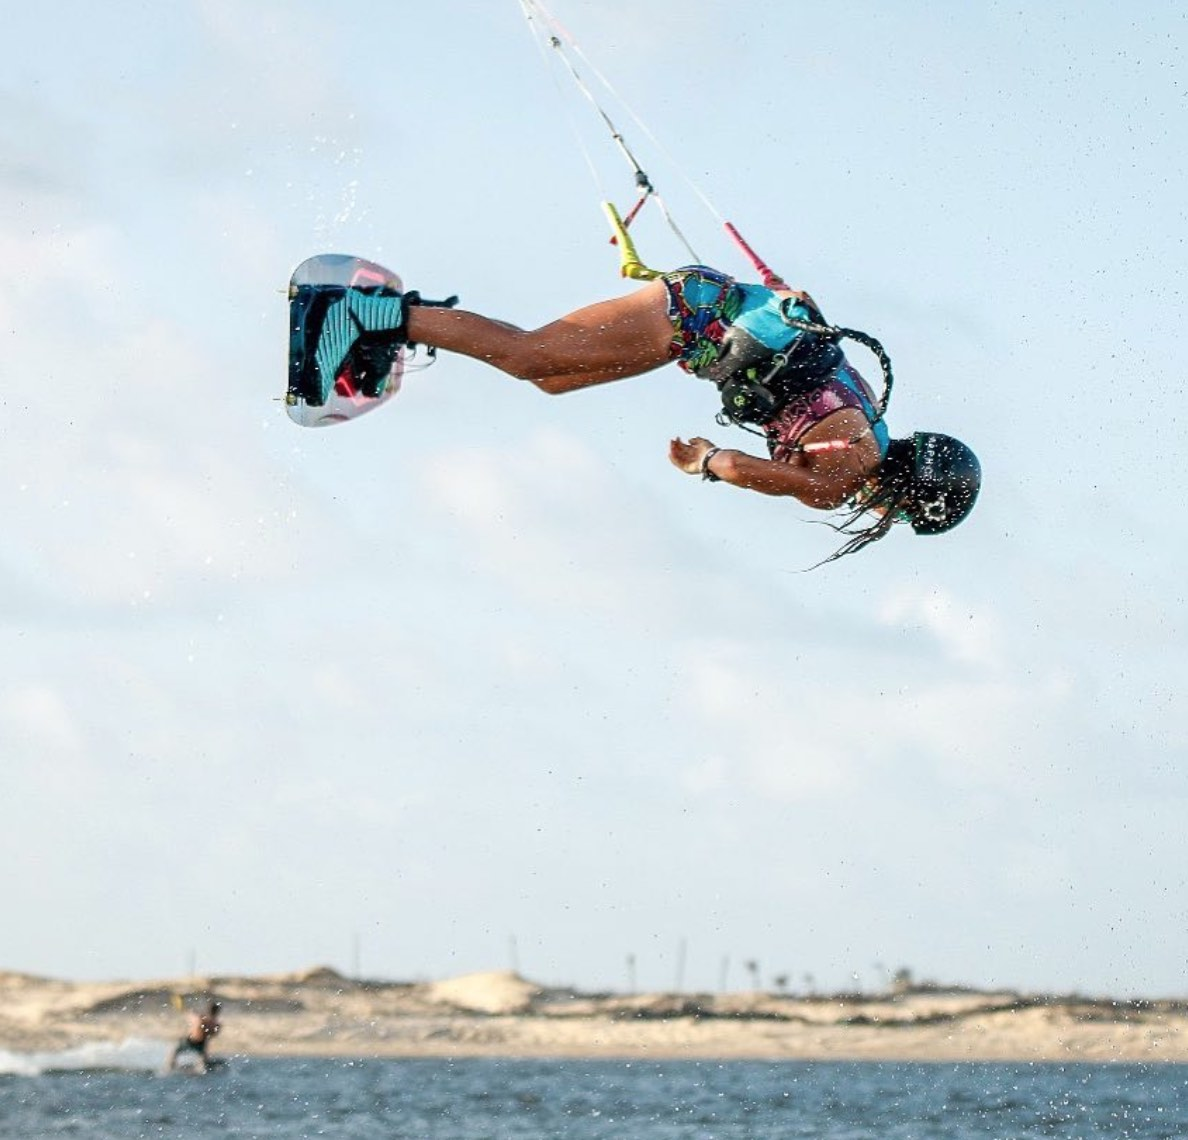 Mika Sol   Junior Kitesurfing World Champ '15, '16, '17